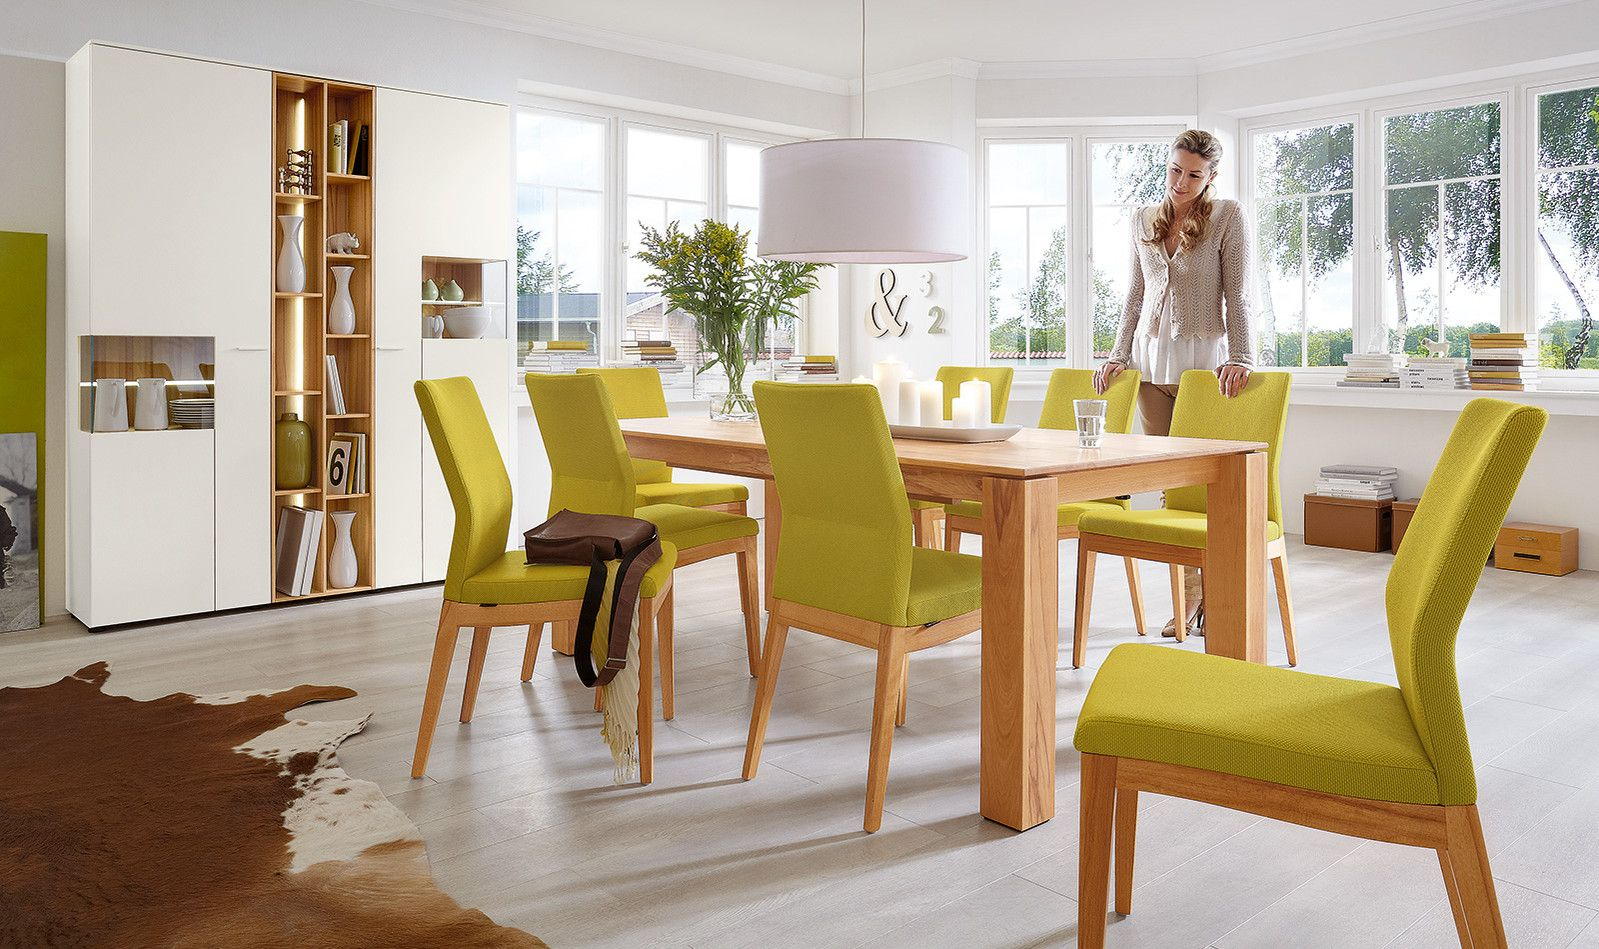 DINING TABLE ET128 - Dining tables - DINING ROOMS - Venjakob Möbel